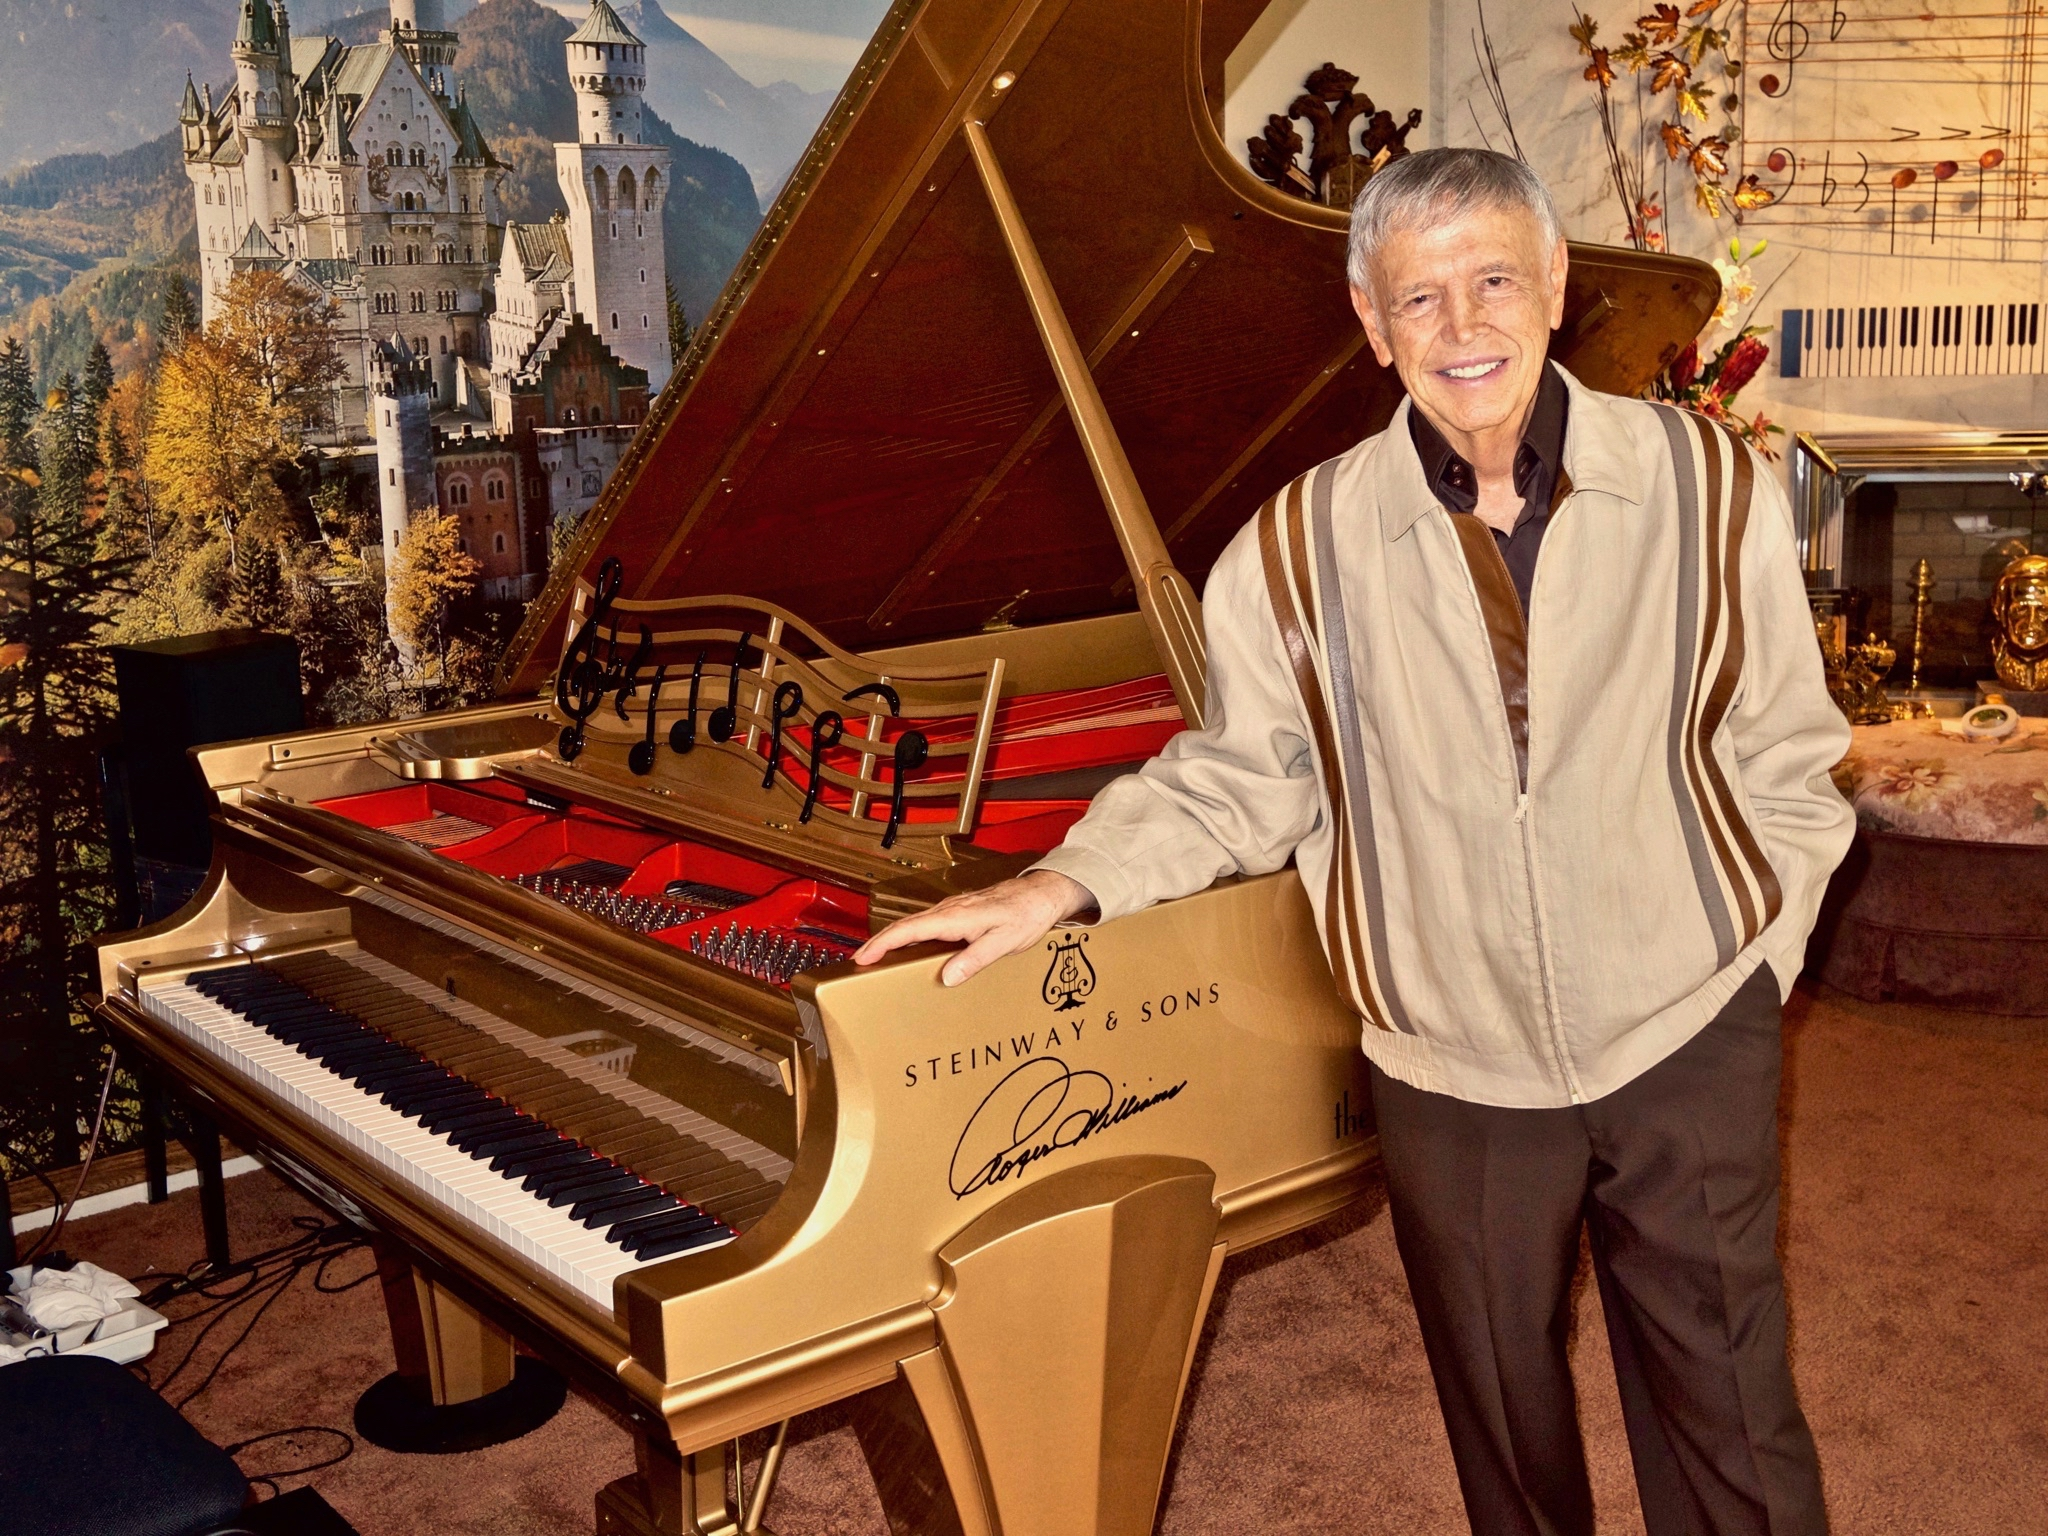 Roger with the Roger Williams Ltd. Edition Gold Steinway